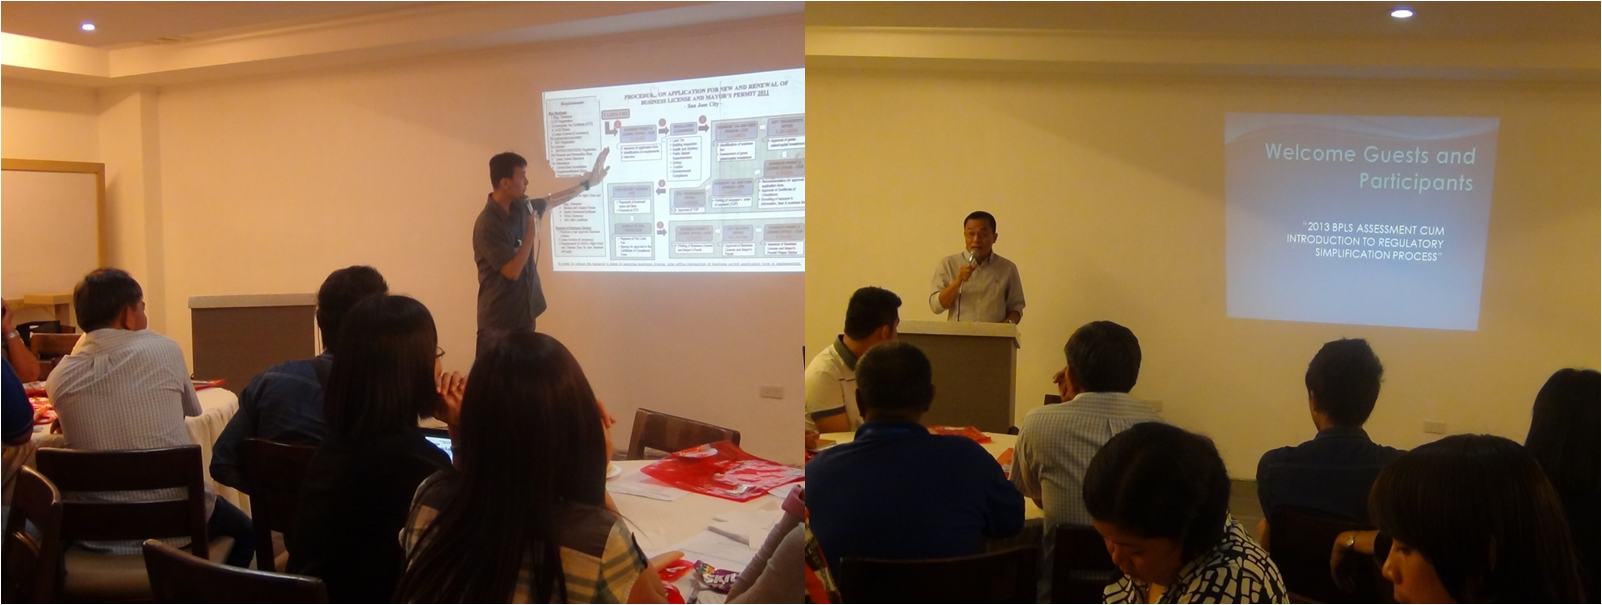 (left photo) Dr. Bobby Pagulayan discusses the RSP. (right photo) ARD Abraham Pascua delivers his welcome message